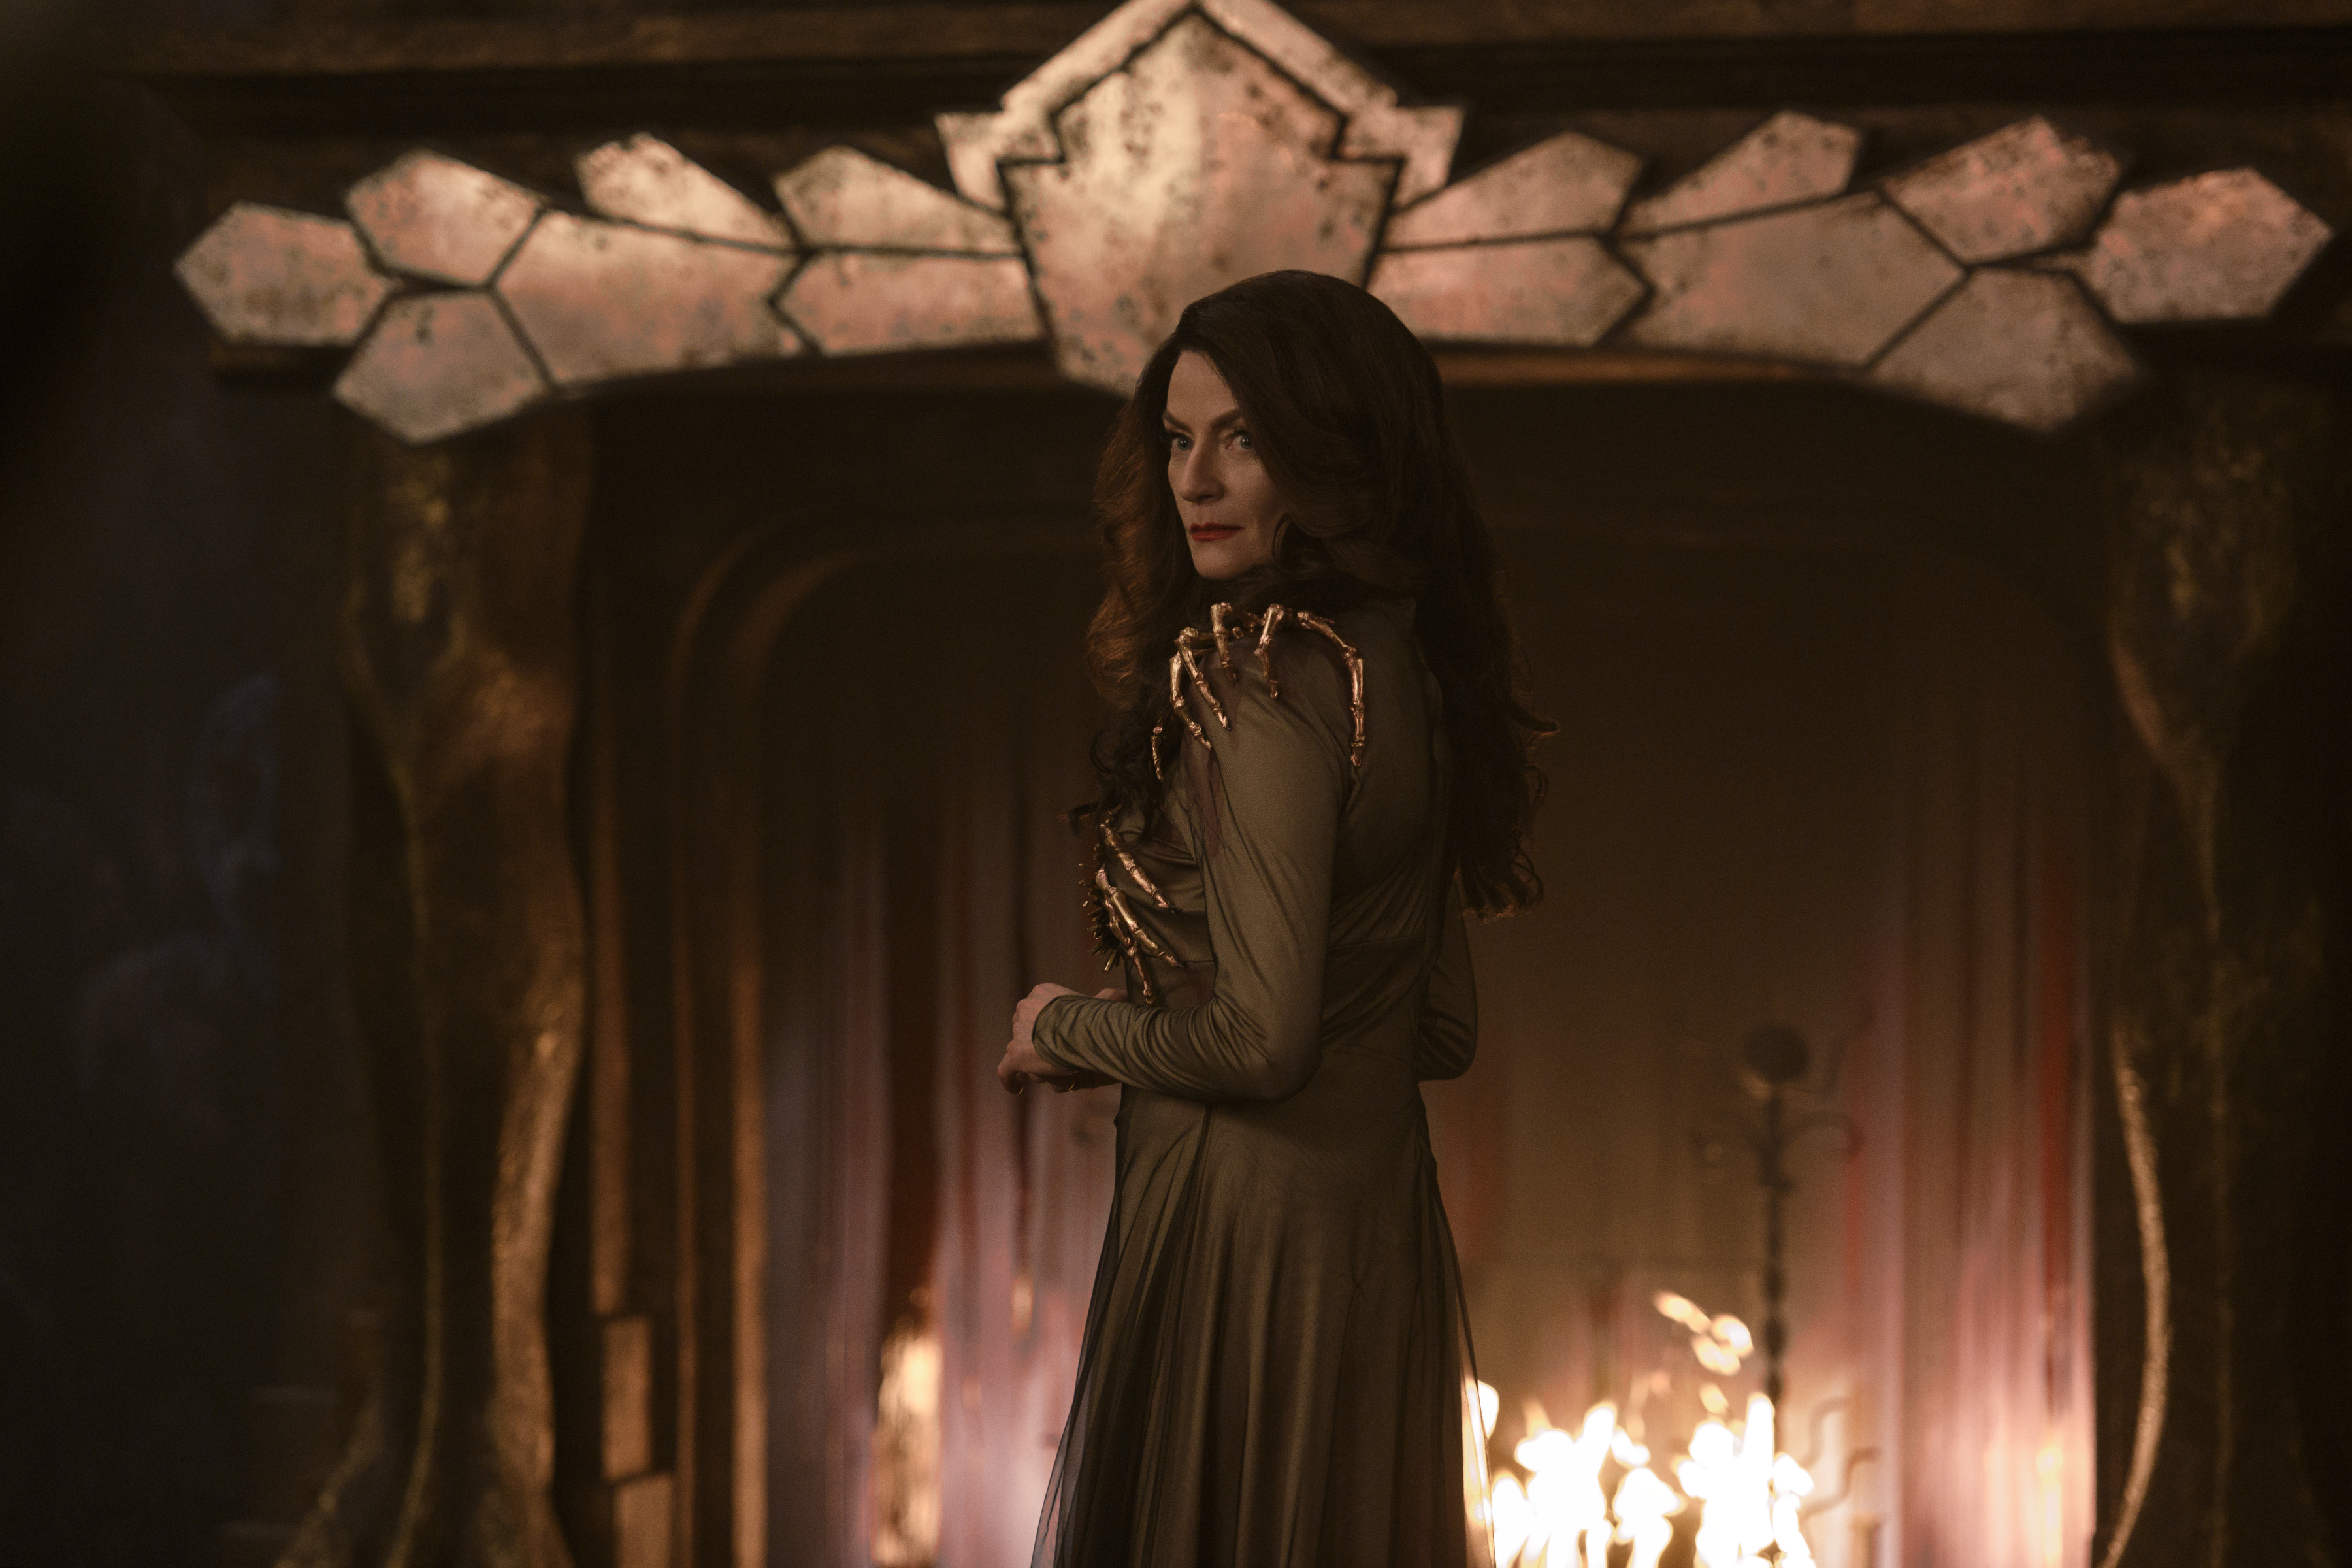 A red-headed woman in a green gown accented with golden finger-bones looks over her shoulder while standing in front of a dramatic fireplace.